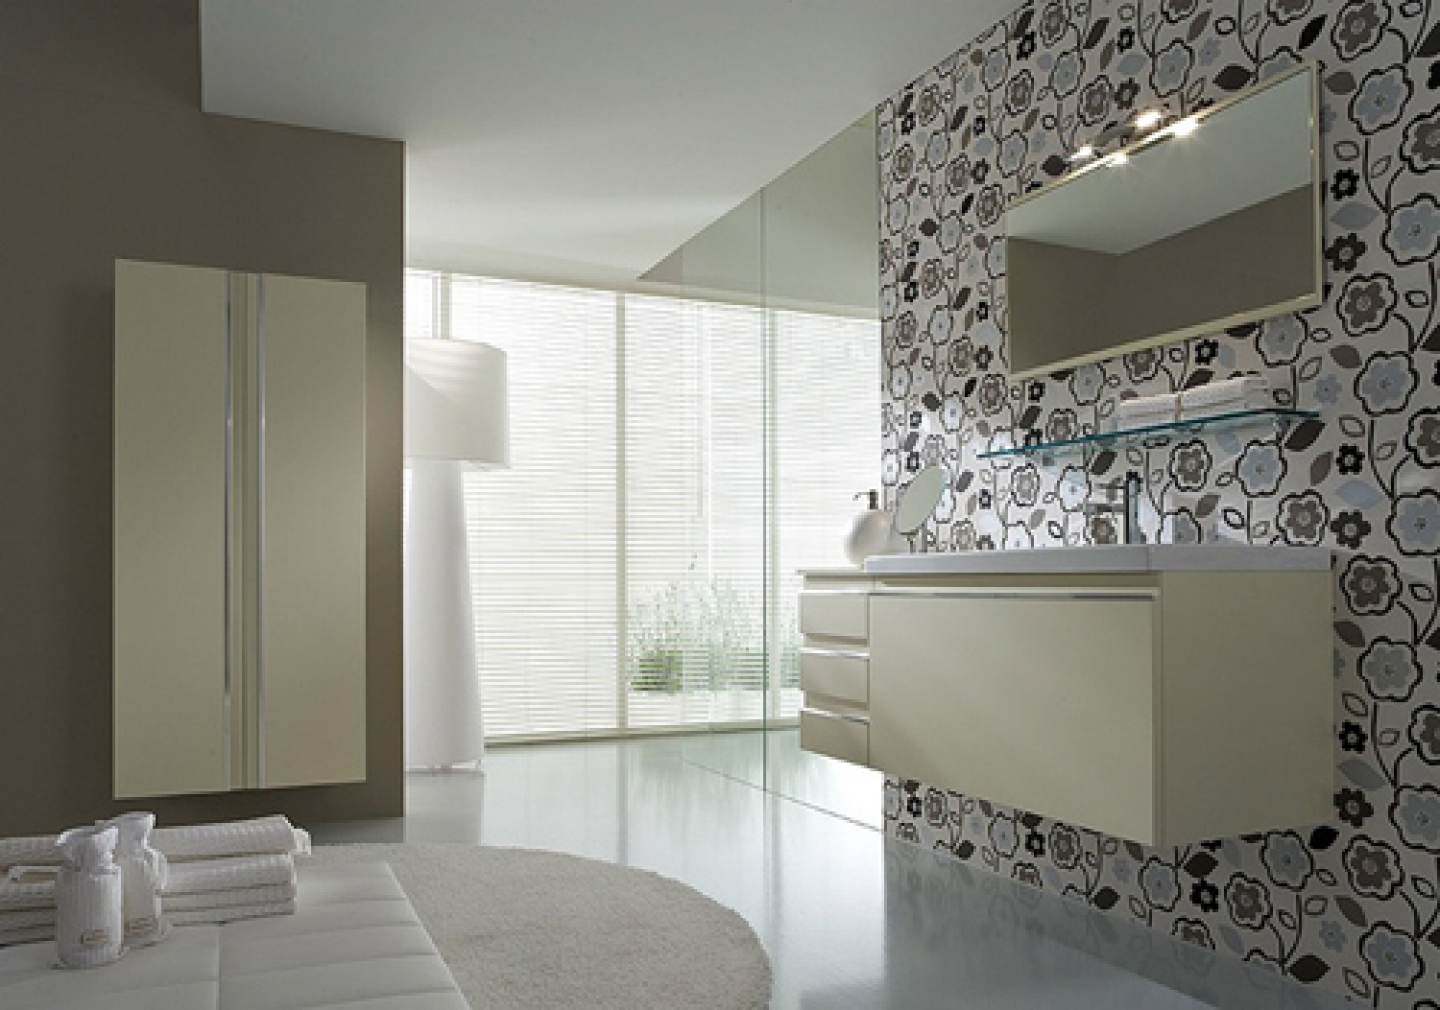 Modern style bathroom made with waterproof wallpaper and mirrored wall 1440x1010